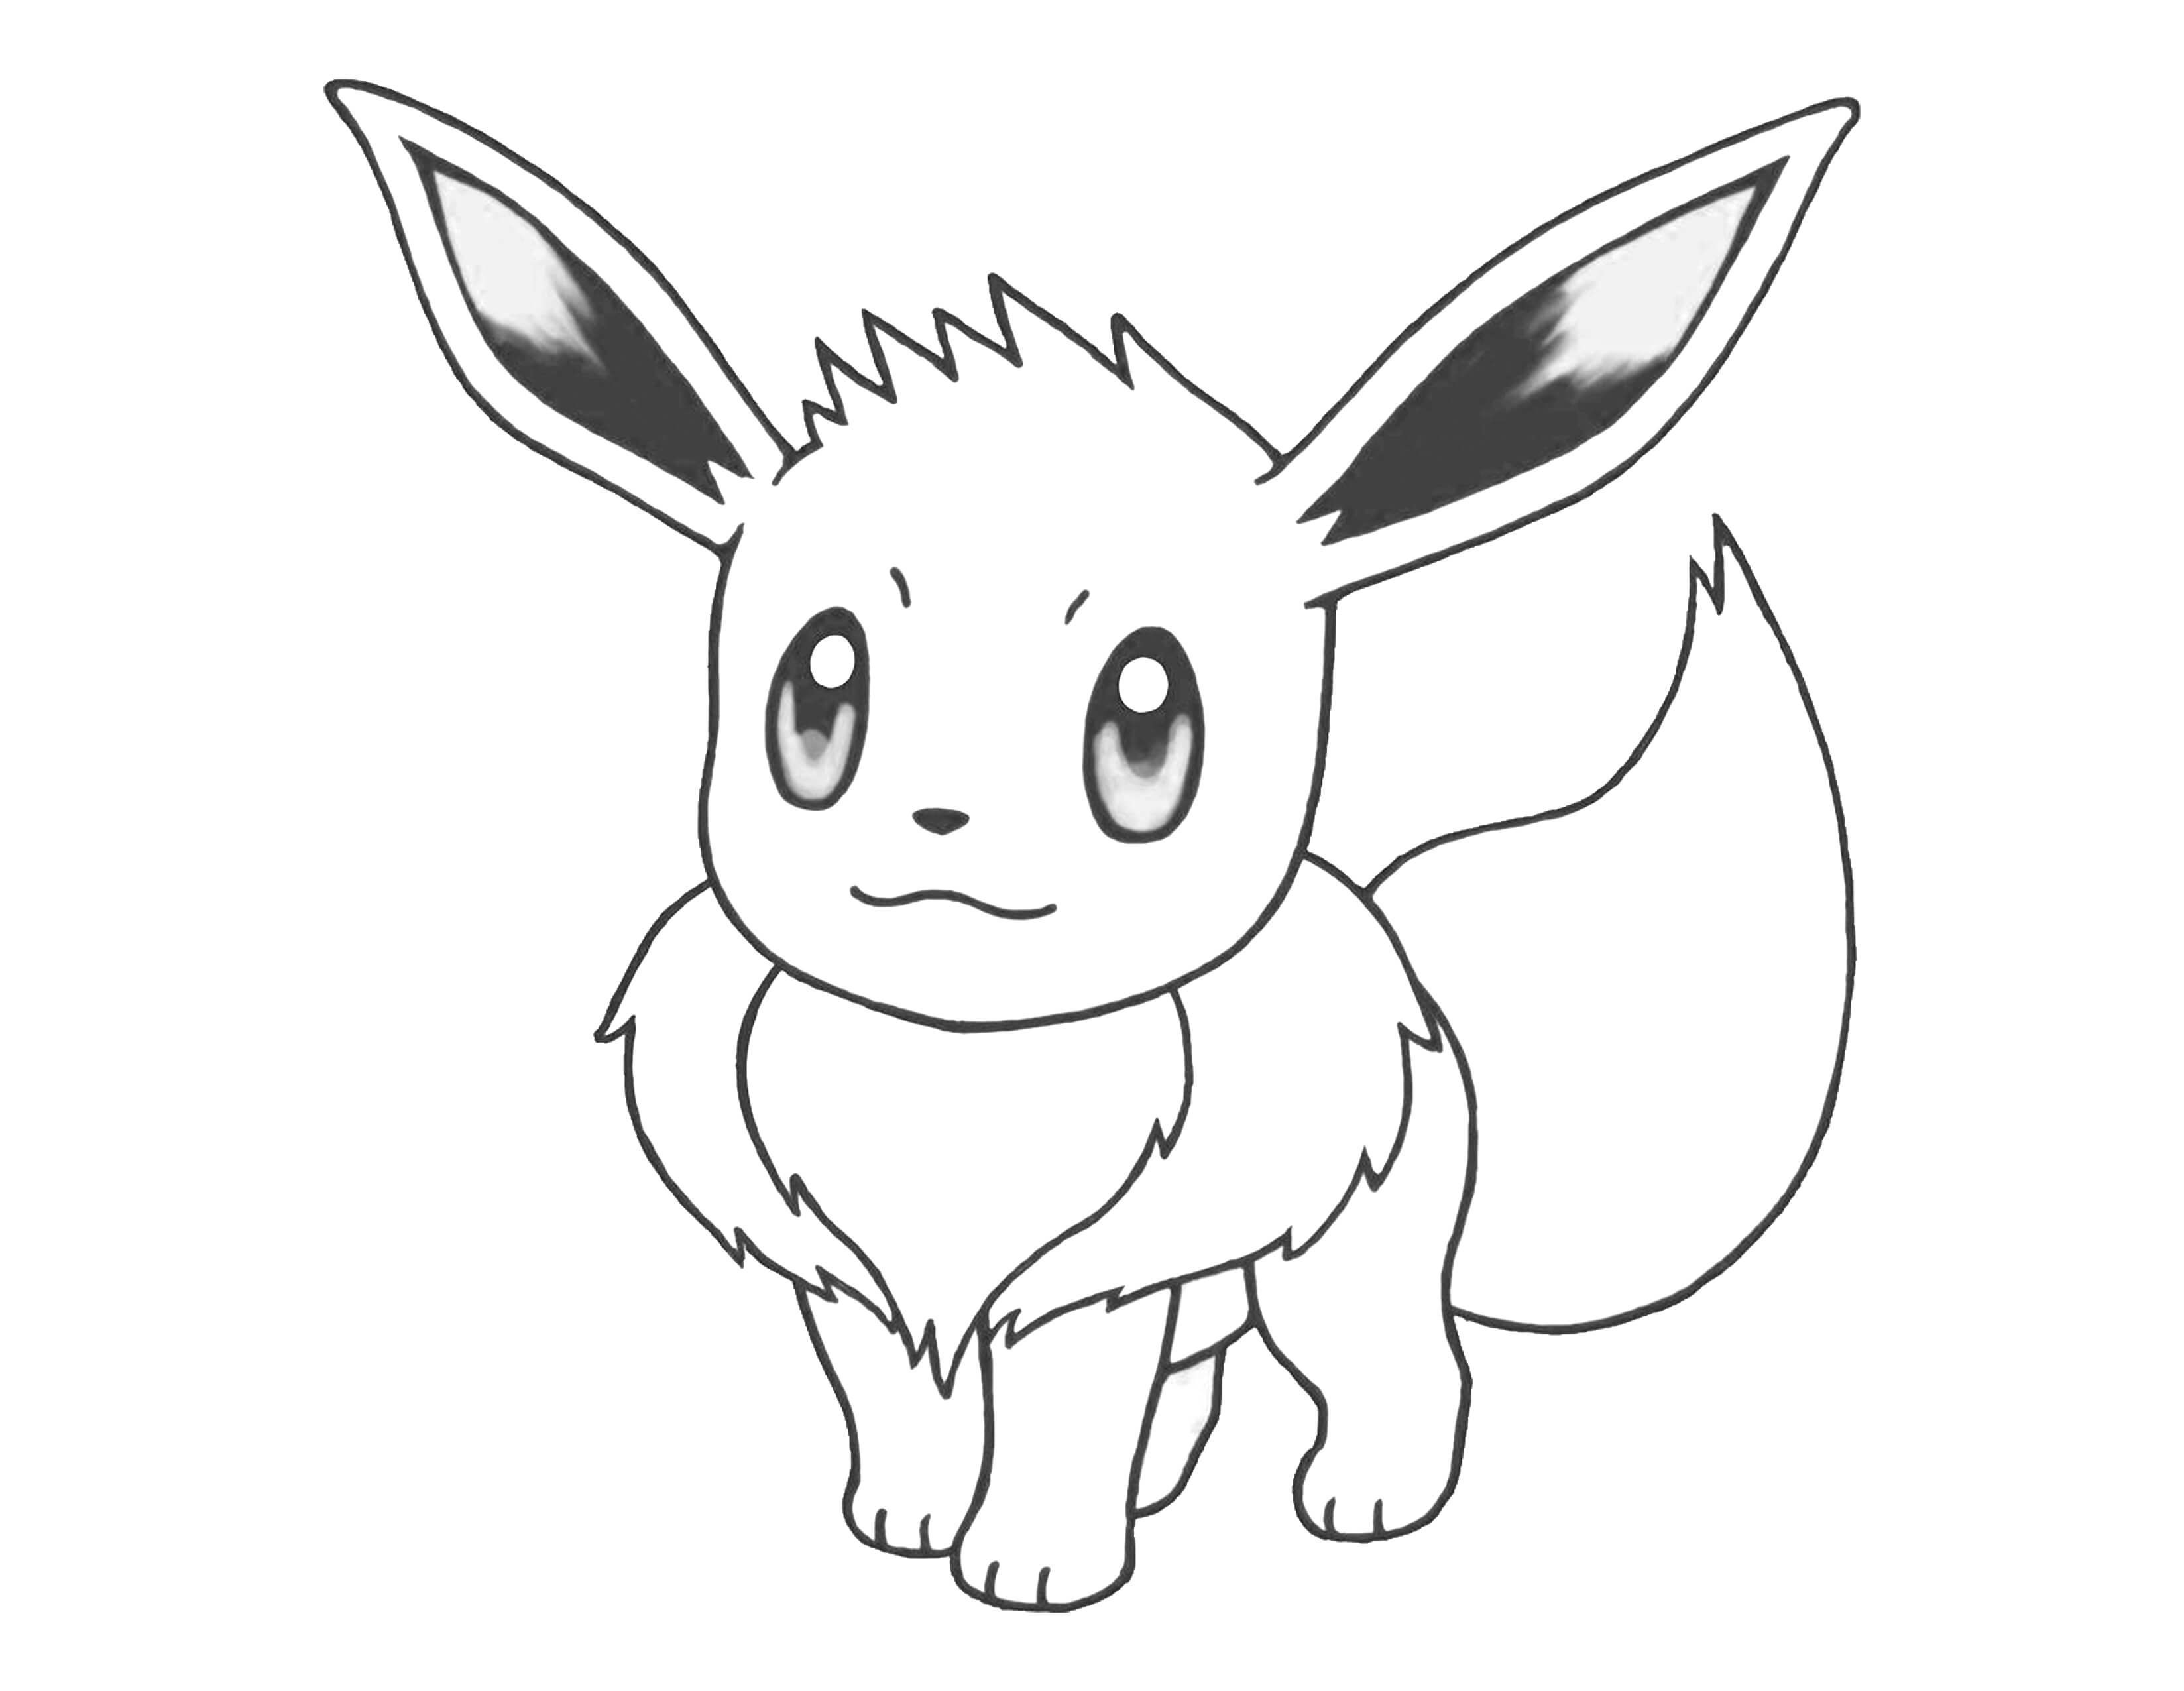 Pokemon Printable Coloring Pages Coloring Pages Kids Pokemon Coloring Pokemon Coloring Pages Dog Coloring Page